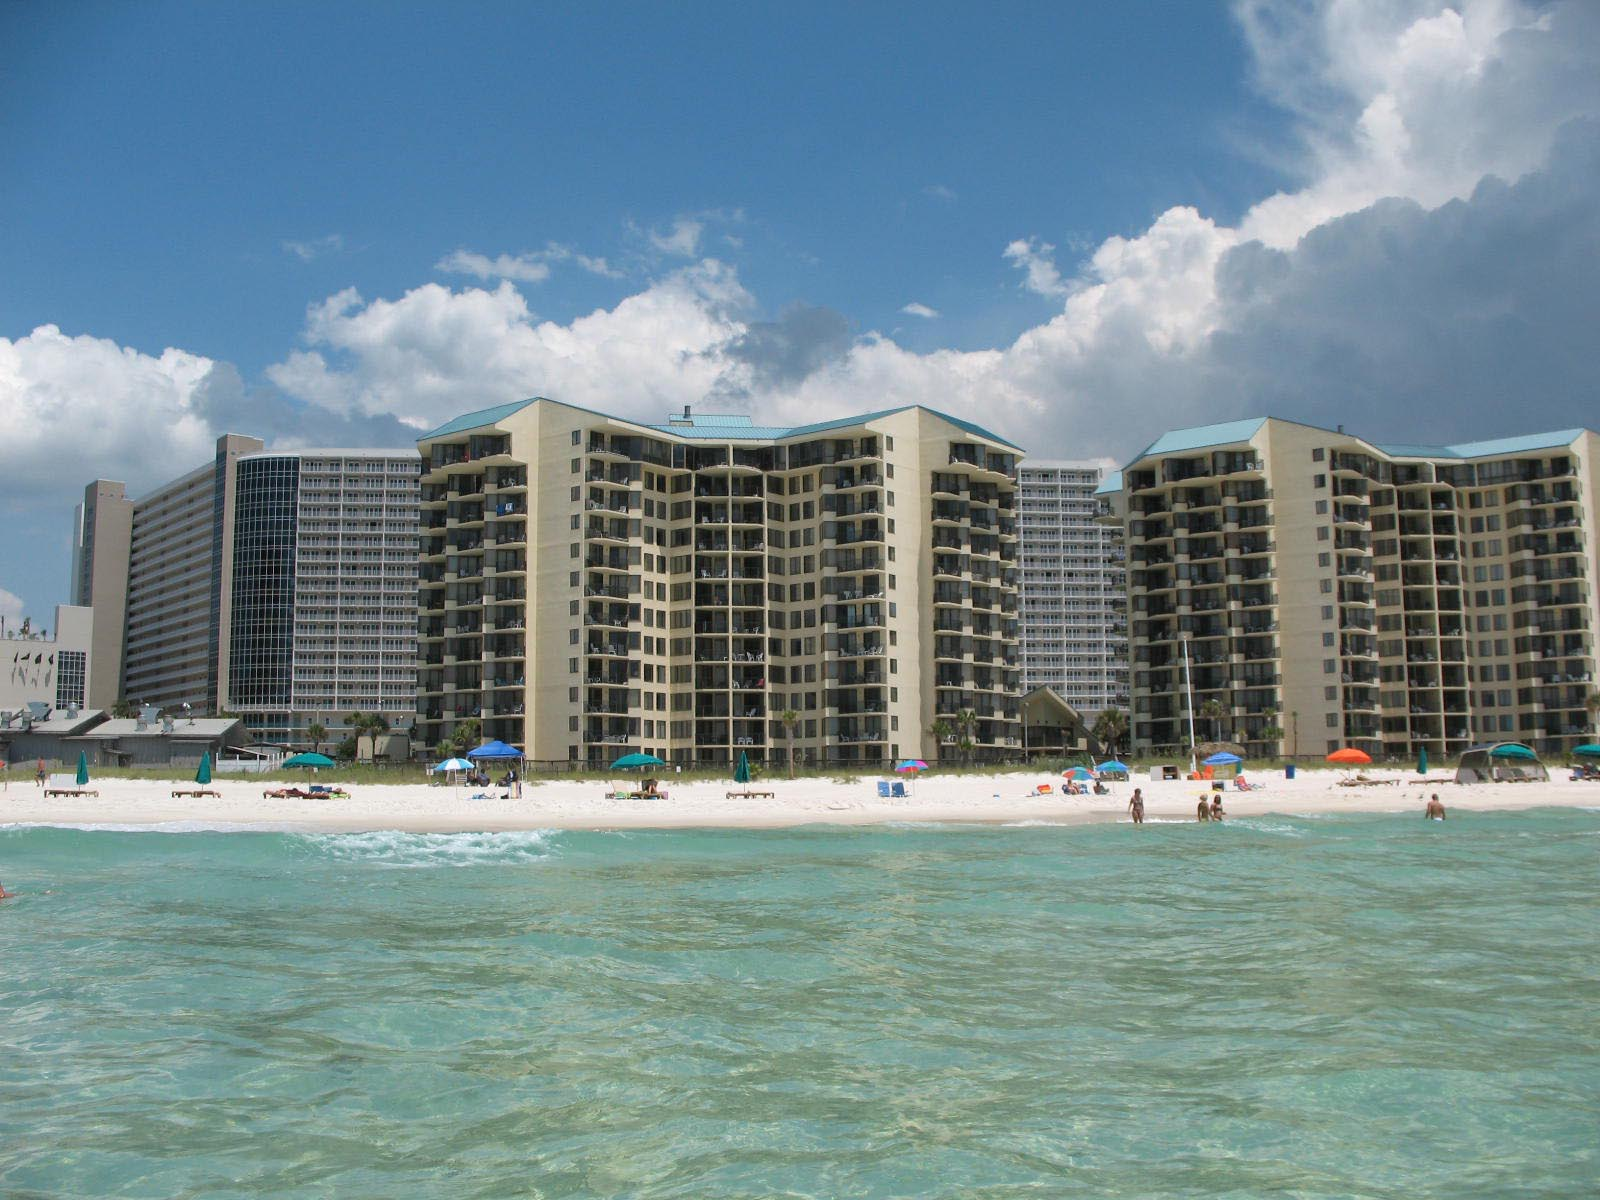 Condo Als At The Sunbird Resort Panama City Beach Fl